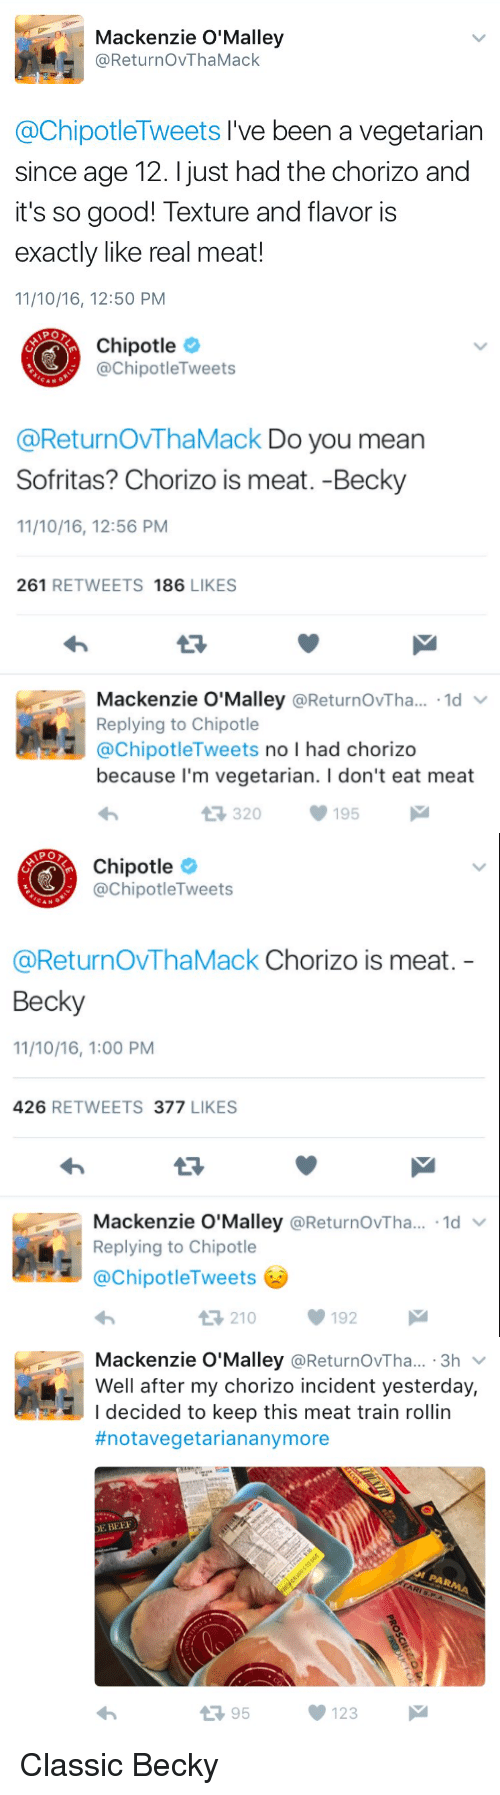 mackenzie: Mackenzie O'Malley  ReturnovThaMack  @ChipotleTweets I've been a vegetarian  since age 12. just had the chorizo and  it's so good! Texture and flavor is  exactly like real meat!  11/10/16, 12:50 PM   Chipotle  @Chipotle Tweets  @ReturnovThaMack Do you mean  Sofritas? Chorizo is meat. -Becky  11/10/16, 12:56 PM  261  RETWEETS  186  LIKES  Mackenzie O'Malley  Returnov Tha...  1d  V  Replying to Chipotle  @Chipotle Tweets  no l had chorizo  because I'm vegetarian. l don't eat meat  t R, 320  195  M   Chipotle  @Chipotle Tweets  @Return OVThaMack Chorizo is meat  Becky  11/10/16, 1:00 PM  426  RETWEETS 377  LIKES  Mackenzie O'Malley  @ReturnovTha... 1d  v  Replying to Chipotle  ChipotleTweets  V 192  t 210   Mackenzie O'Malley  @ReturnovTha... 3h  Well after my chorizo incident yesterday,  I decided to keep this meat train rollin  #notavegetarian anymore  DE BEER  t 95  123 Classic Becky